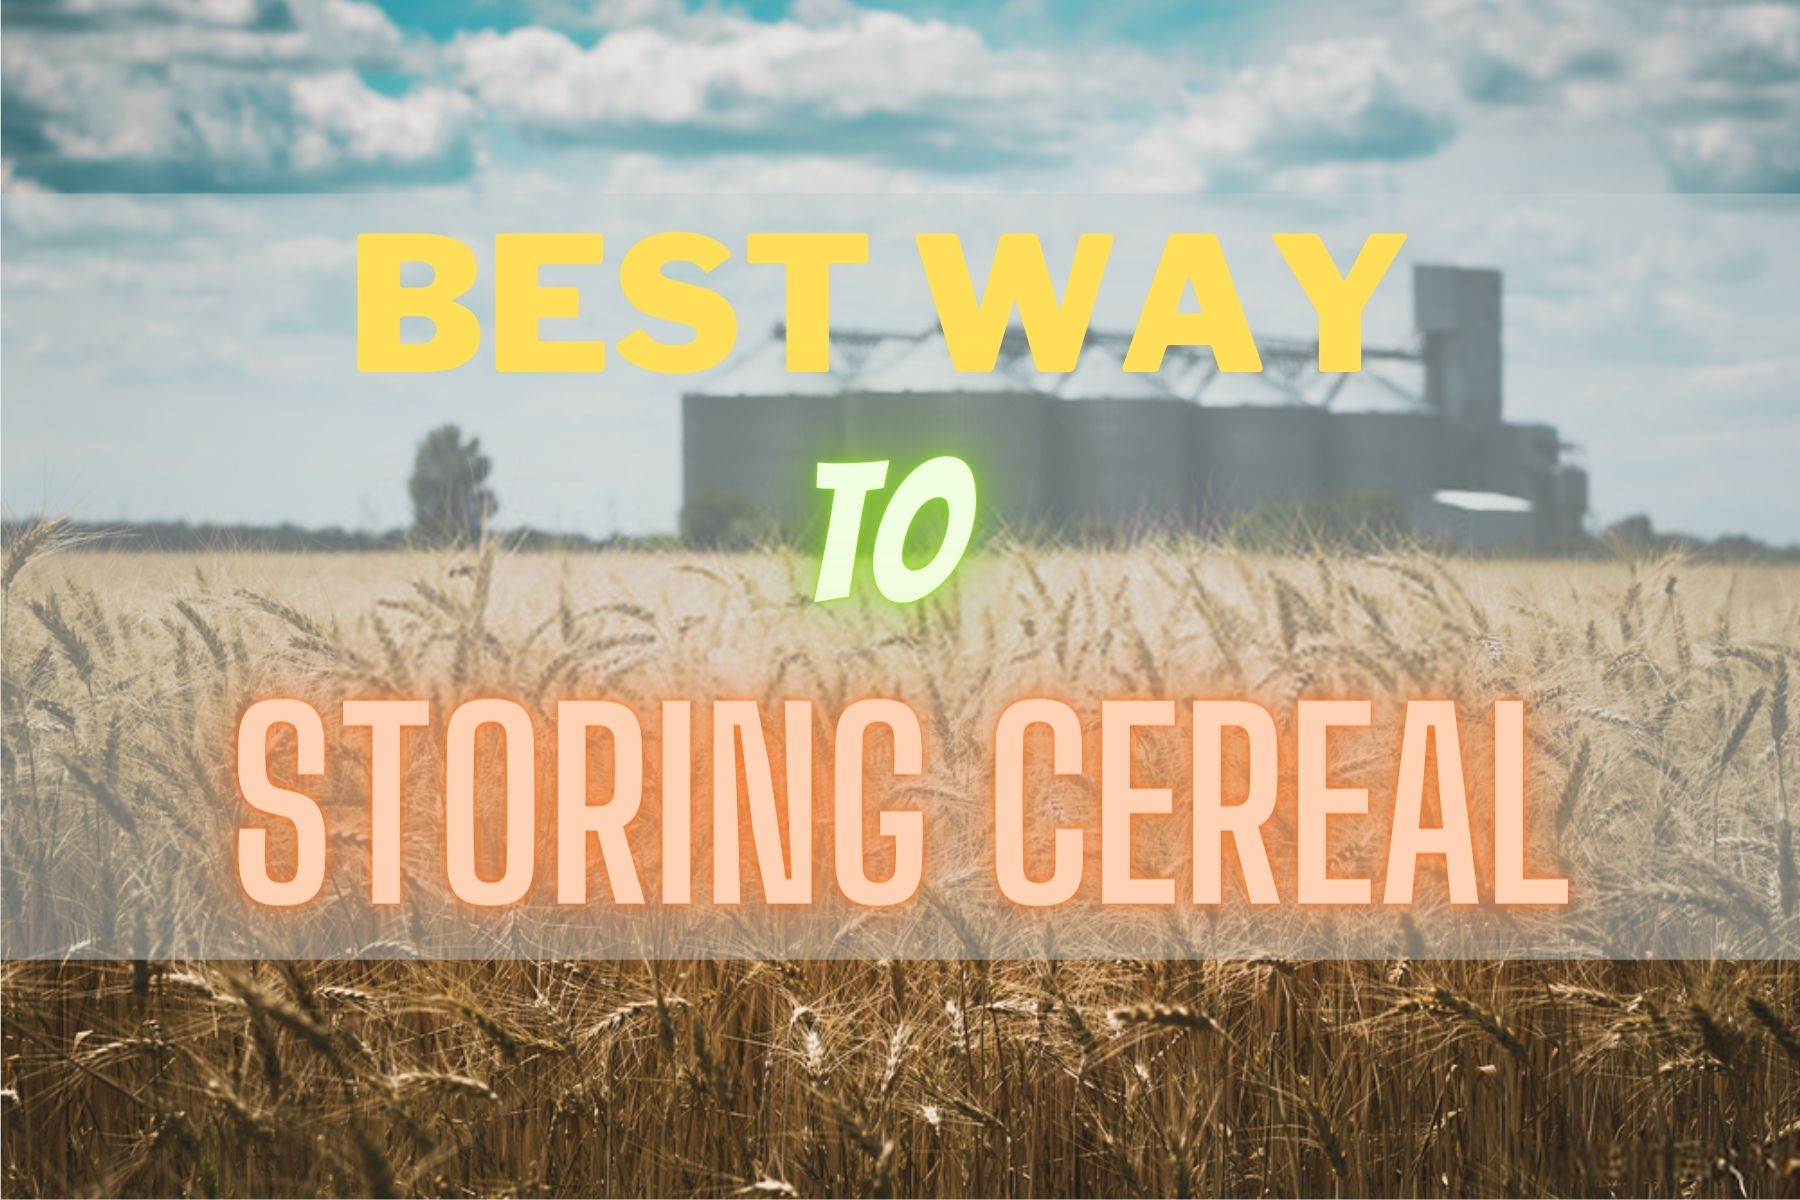 Best Way To Store Cereal